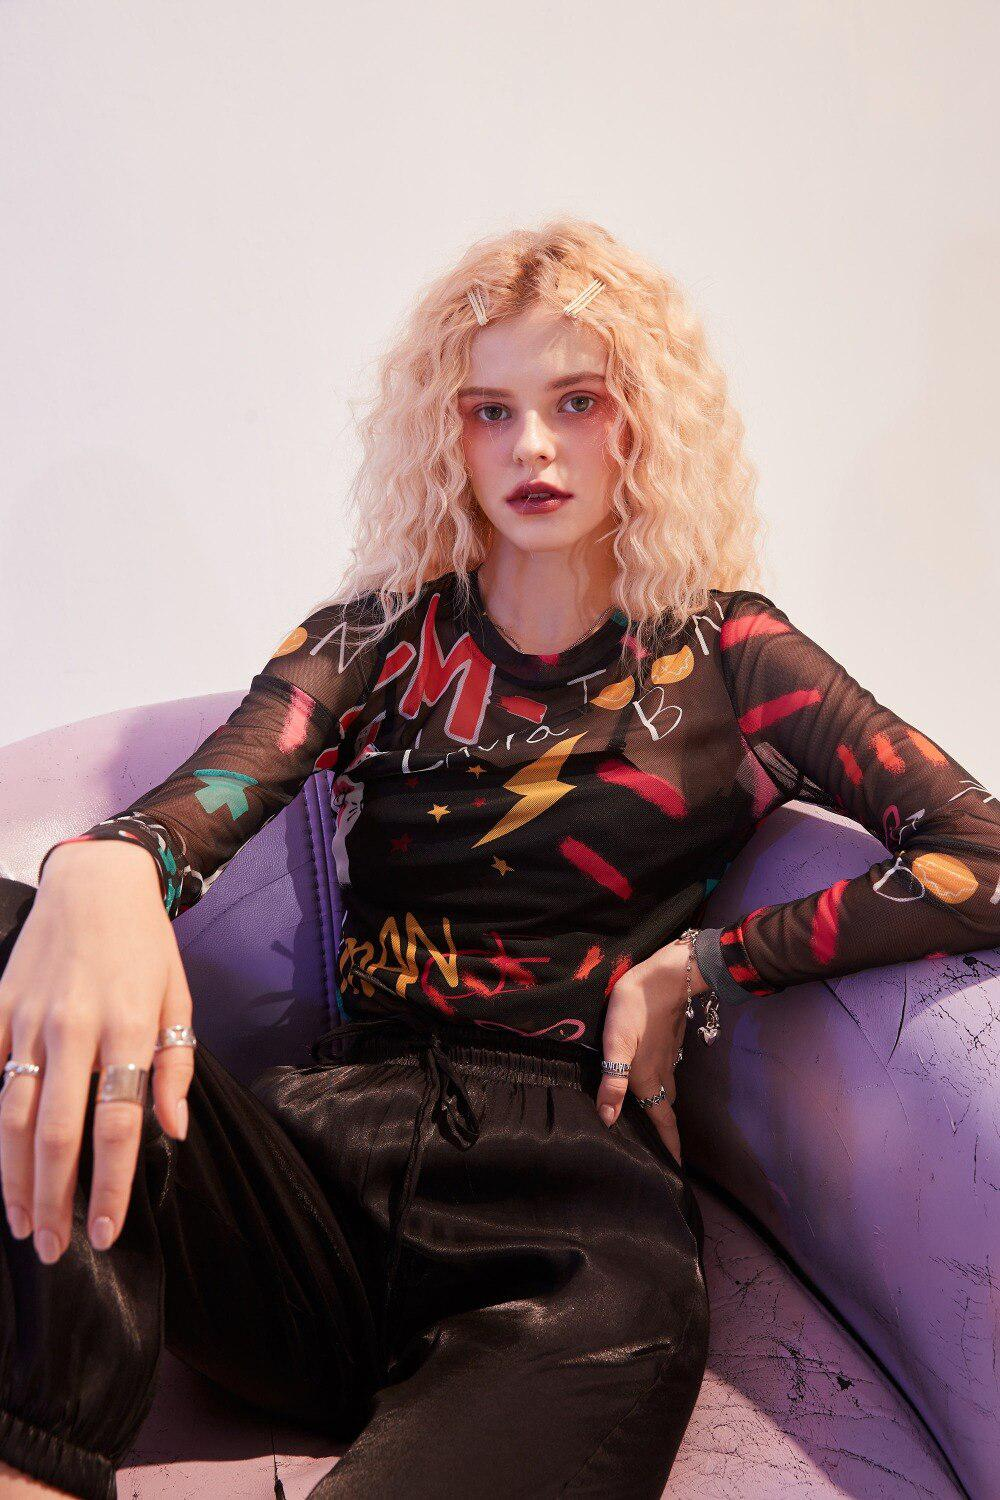 MULTICOLOR LETTER PRINT CHIC MESH BLOUSE - Cosmique Studio